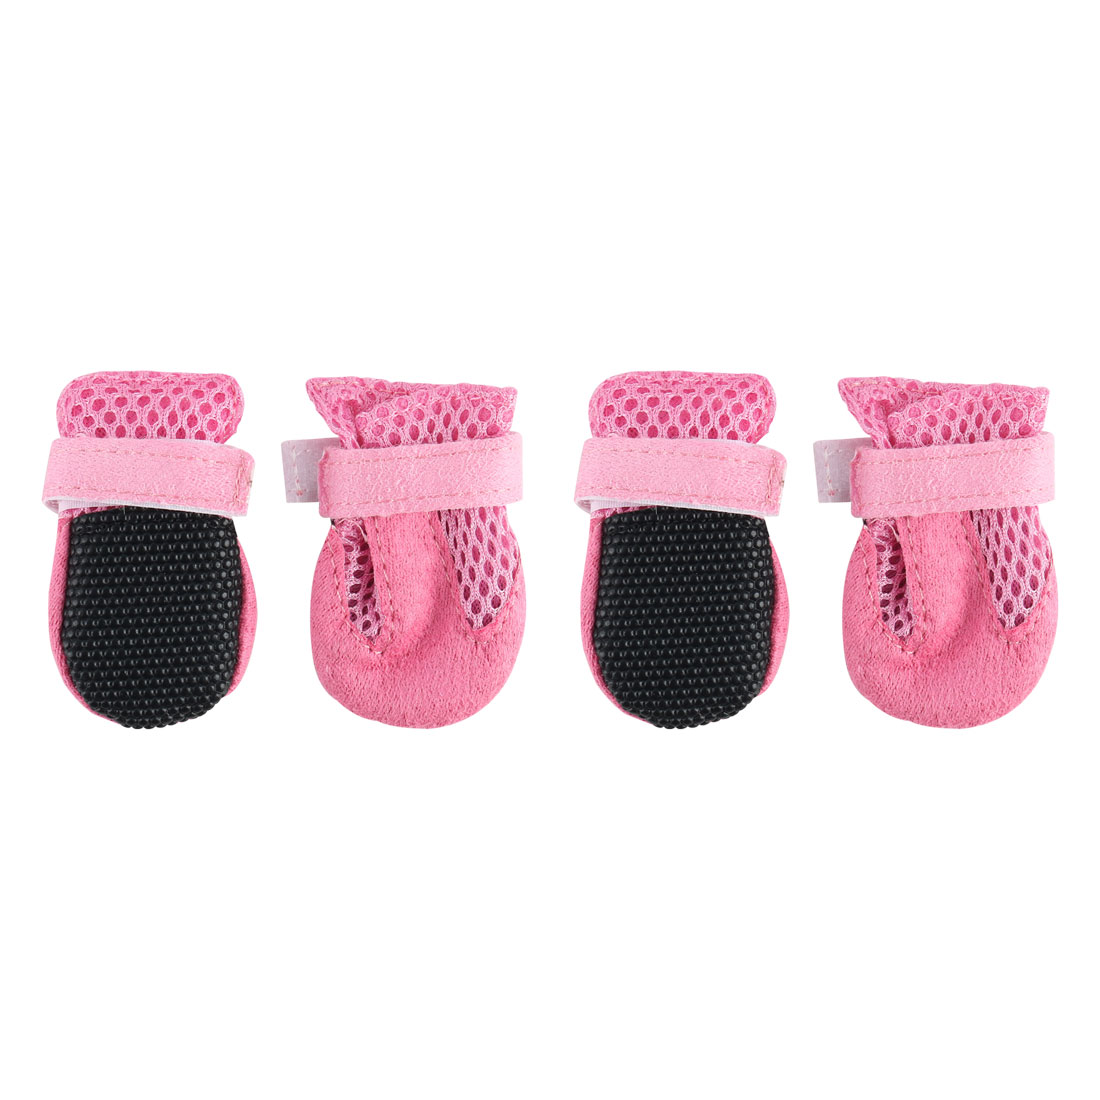 Dog Shoes Pet Boot Wear Resistant Breathable Hiking Paw Protectors Pink 4pcs, XL